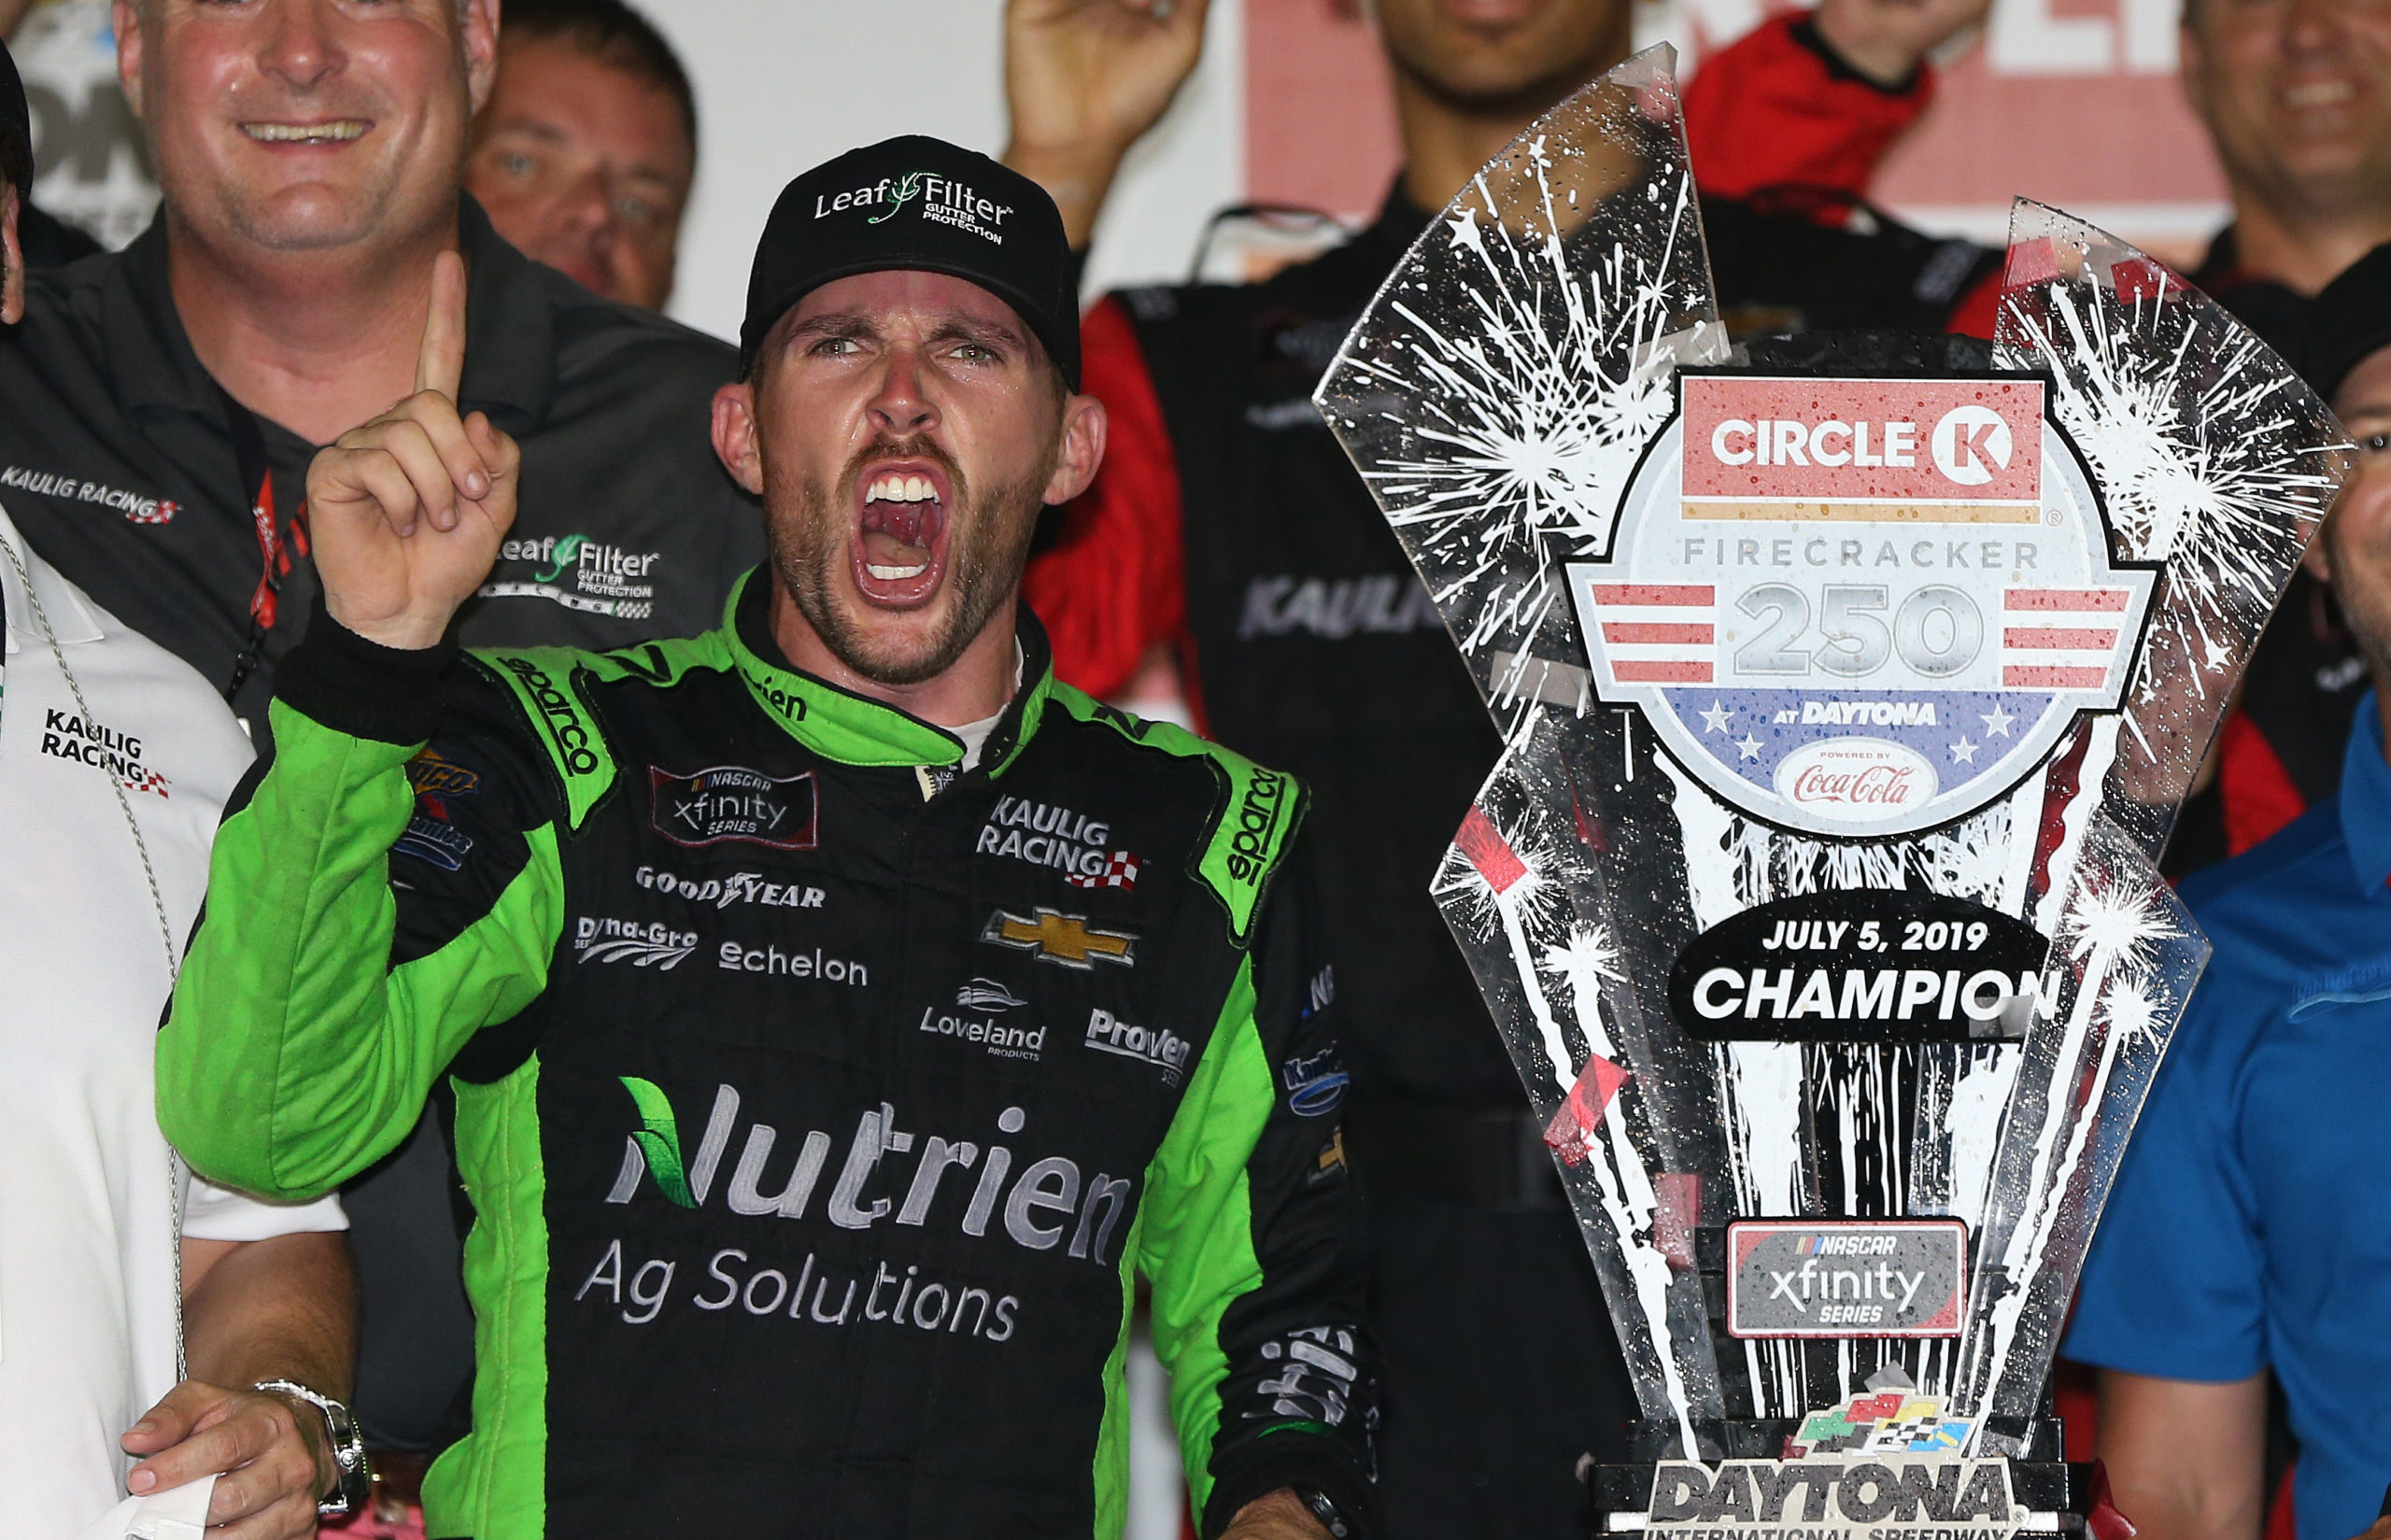 Ross Chastain to Team Trackhouse for 2022